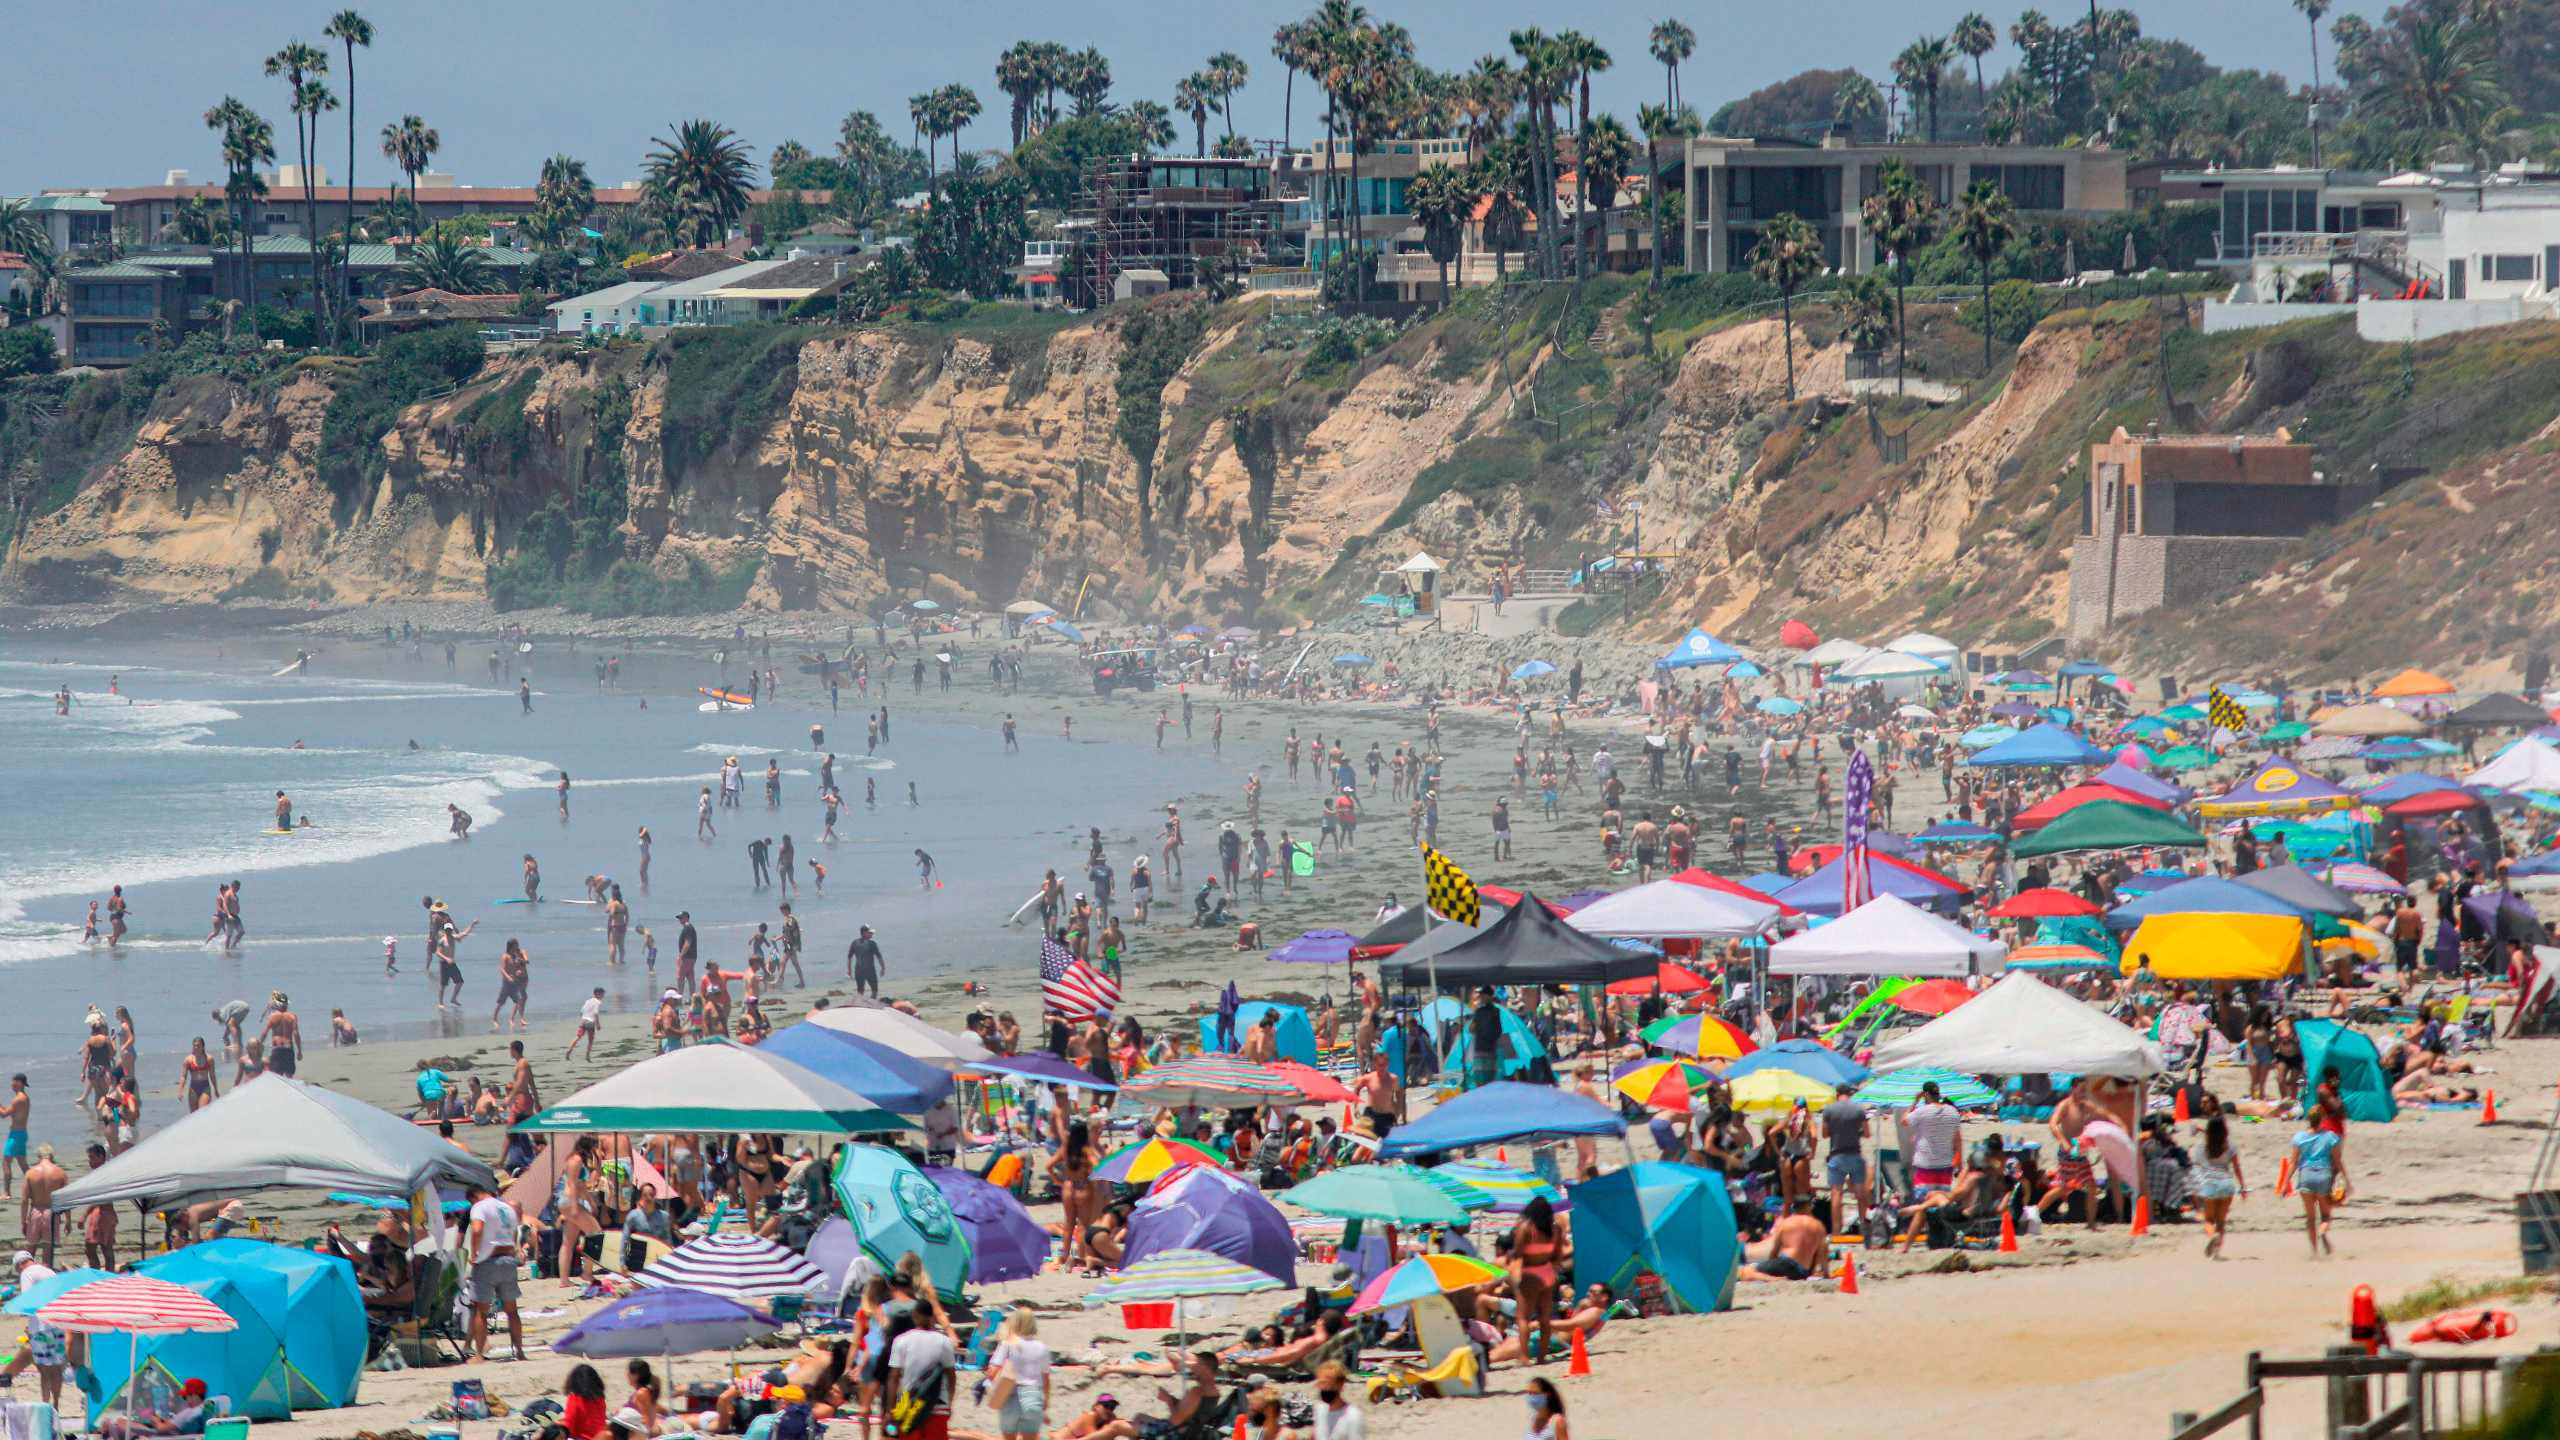 Beachgoers are seen along the shore in the Pacific Beach area of San Diego on July 4, 2020. (SANDY HUFFAKER/AFP via Getty Images)